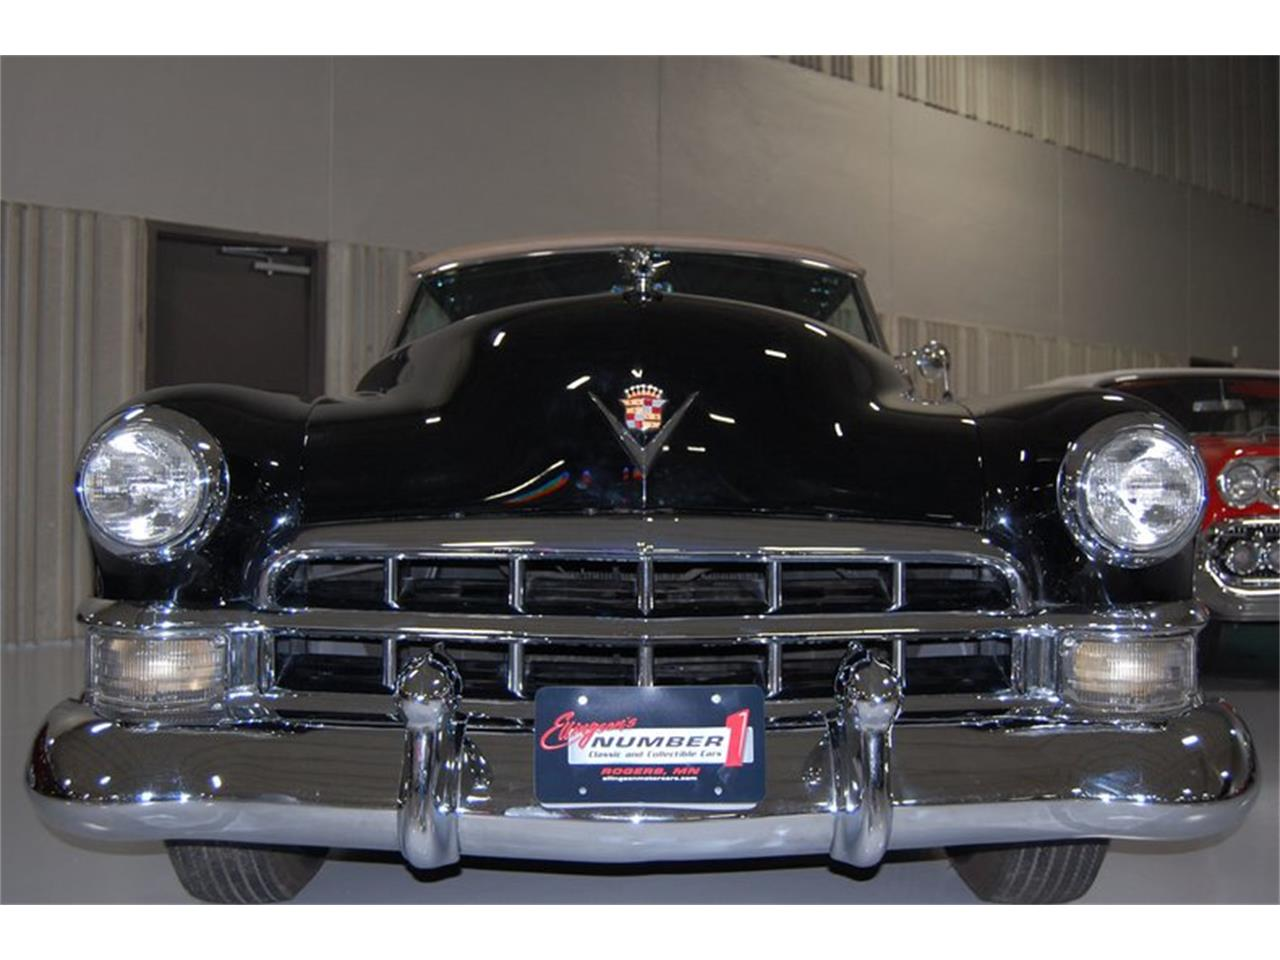 Large Picture of Classic 1949 Cadillac Series 62 located in Rogers Minnesota - $74,995.00 Offered by Ellingson Motorcars - QCIZ